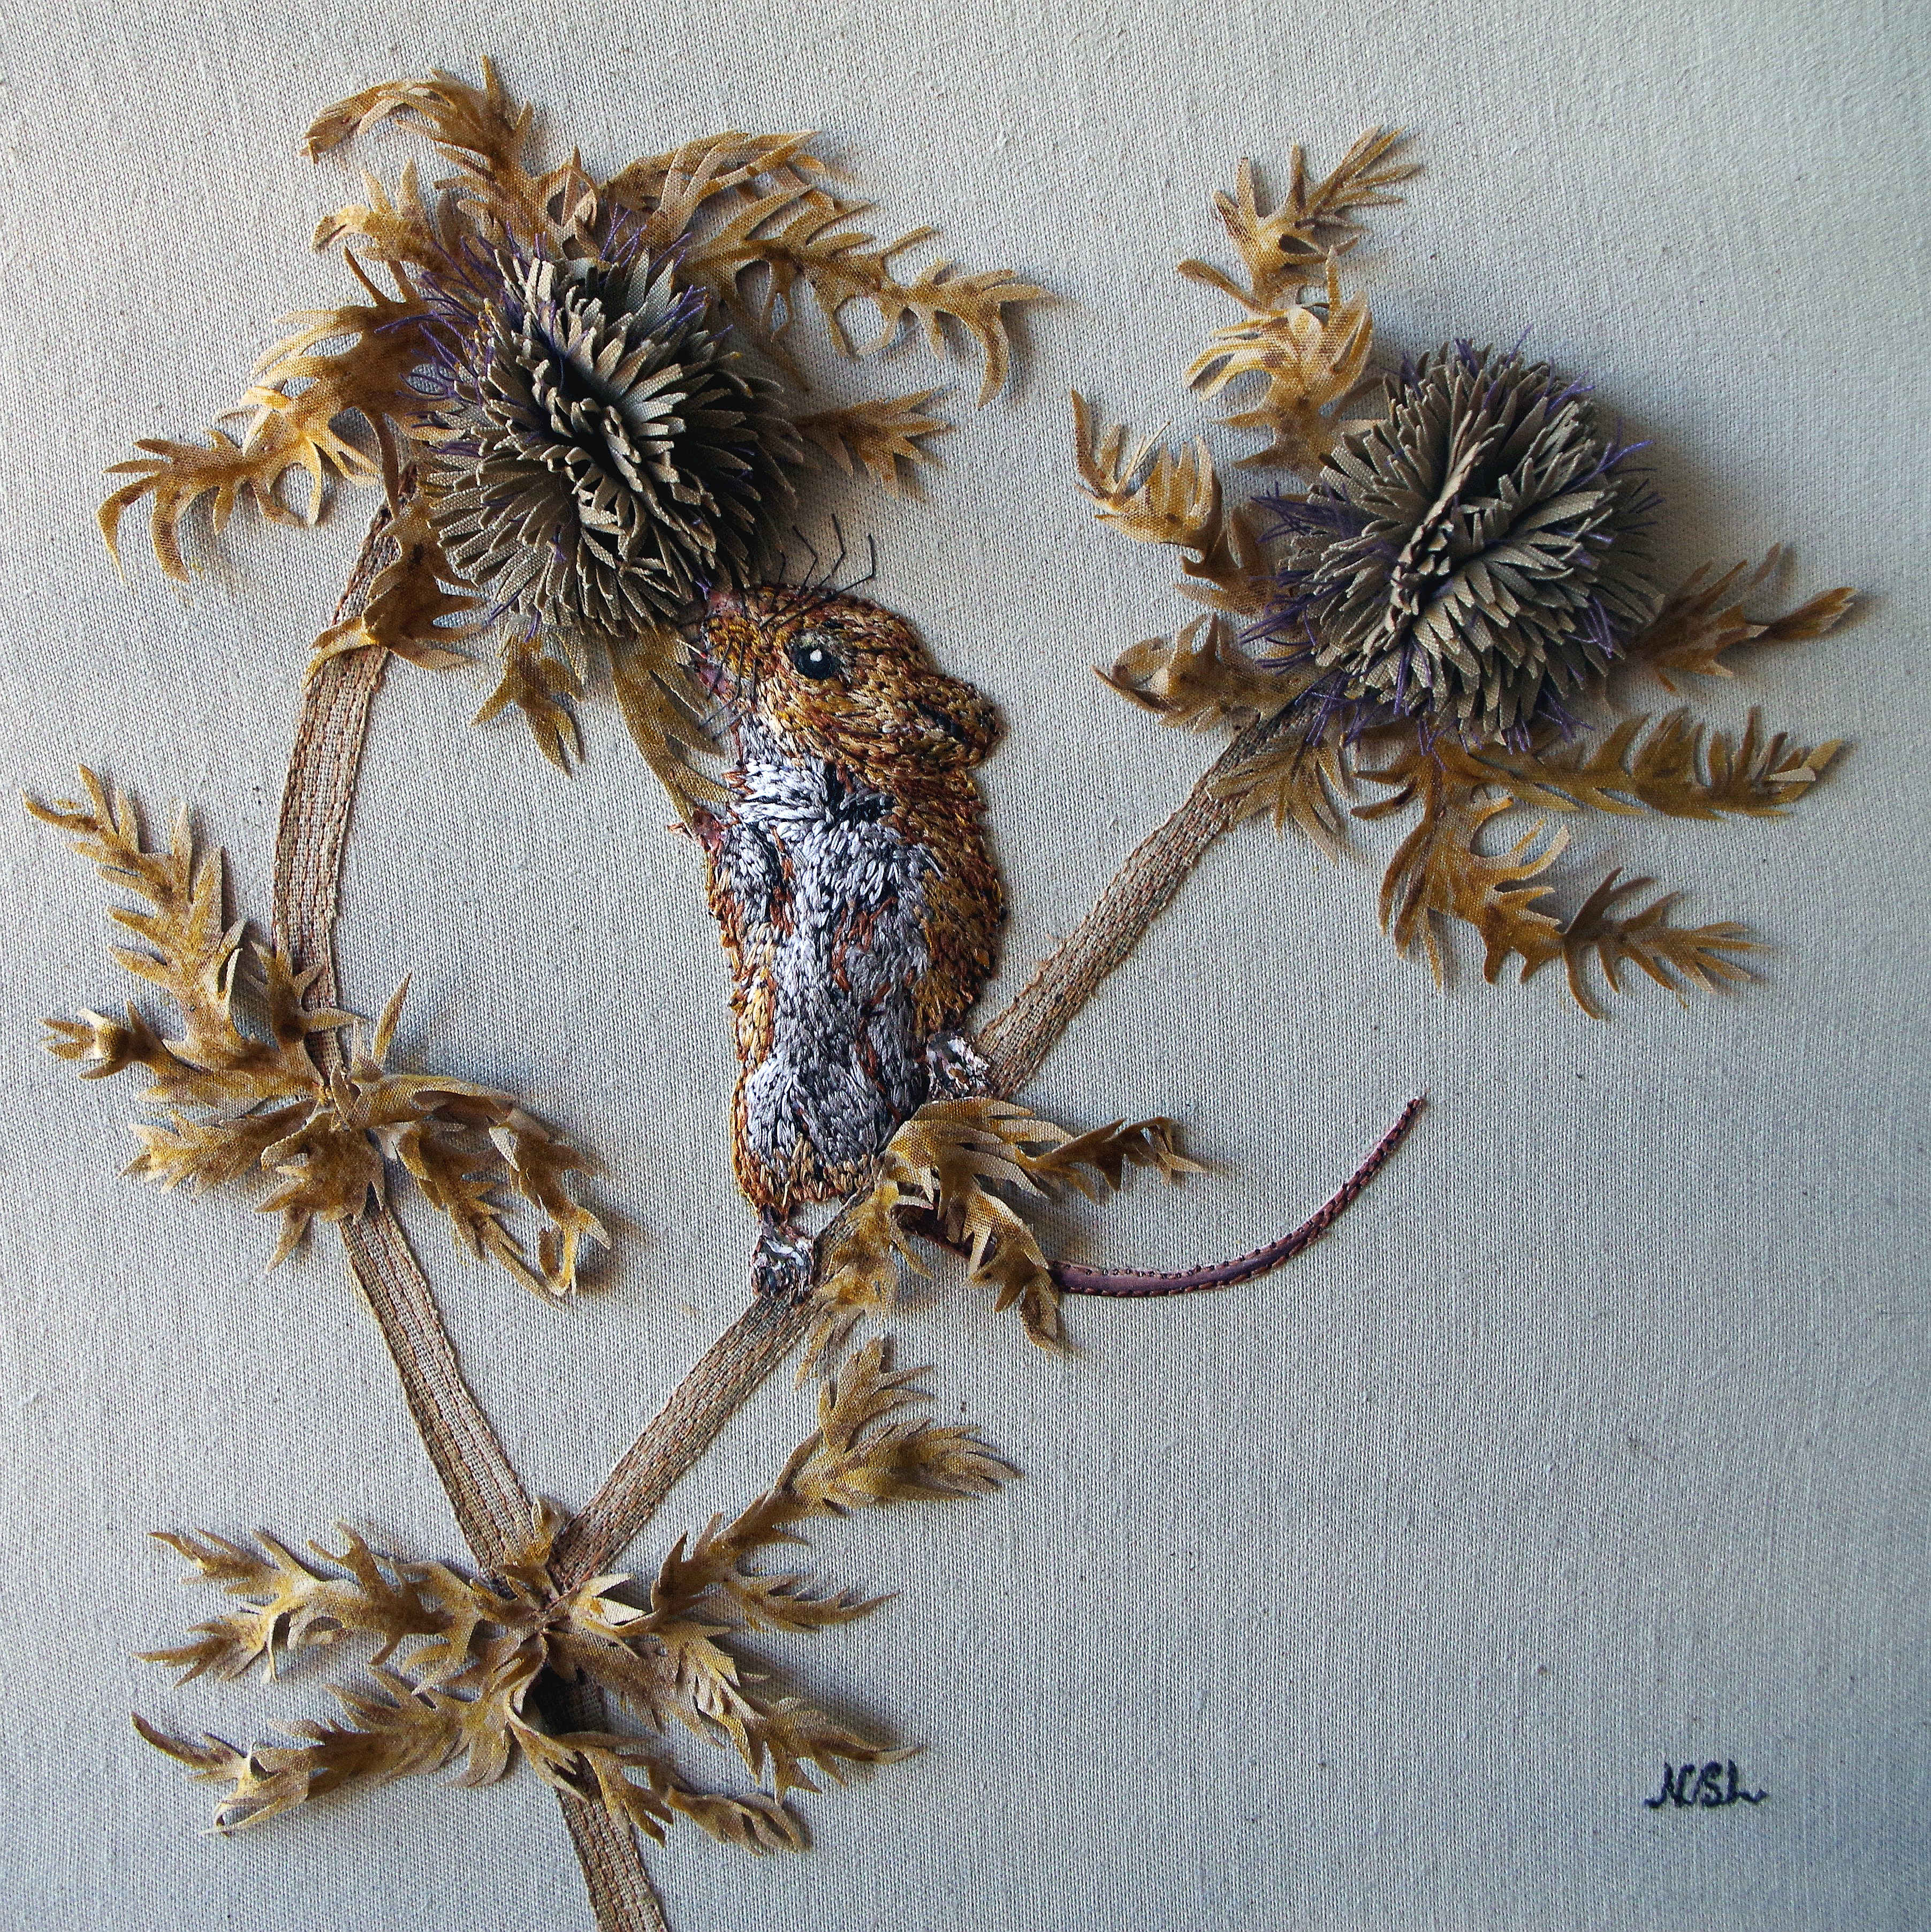 Prickly Work SOLD